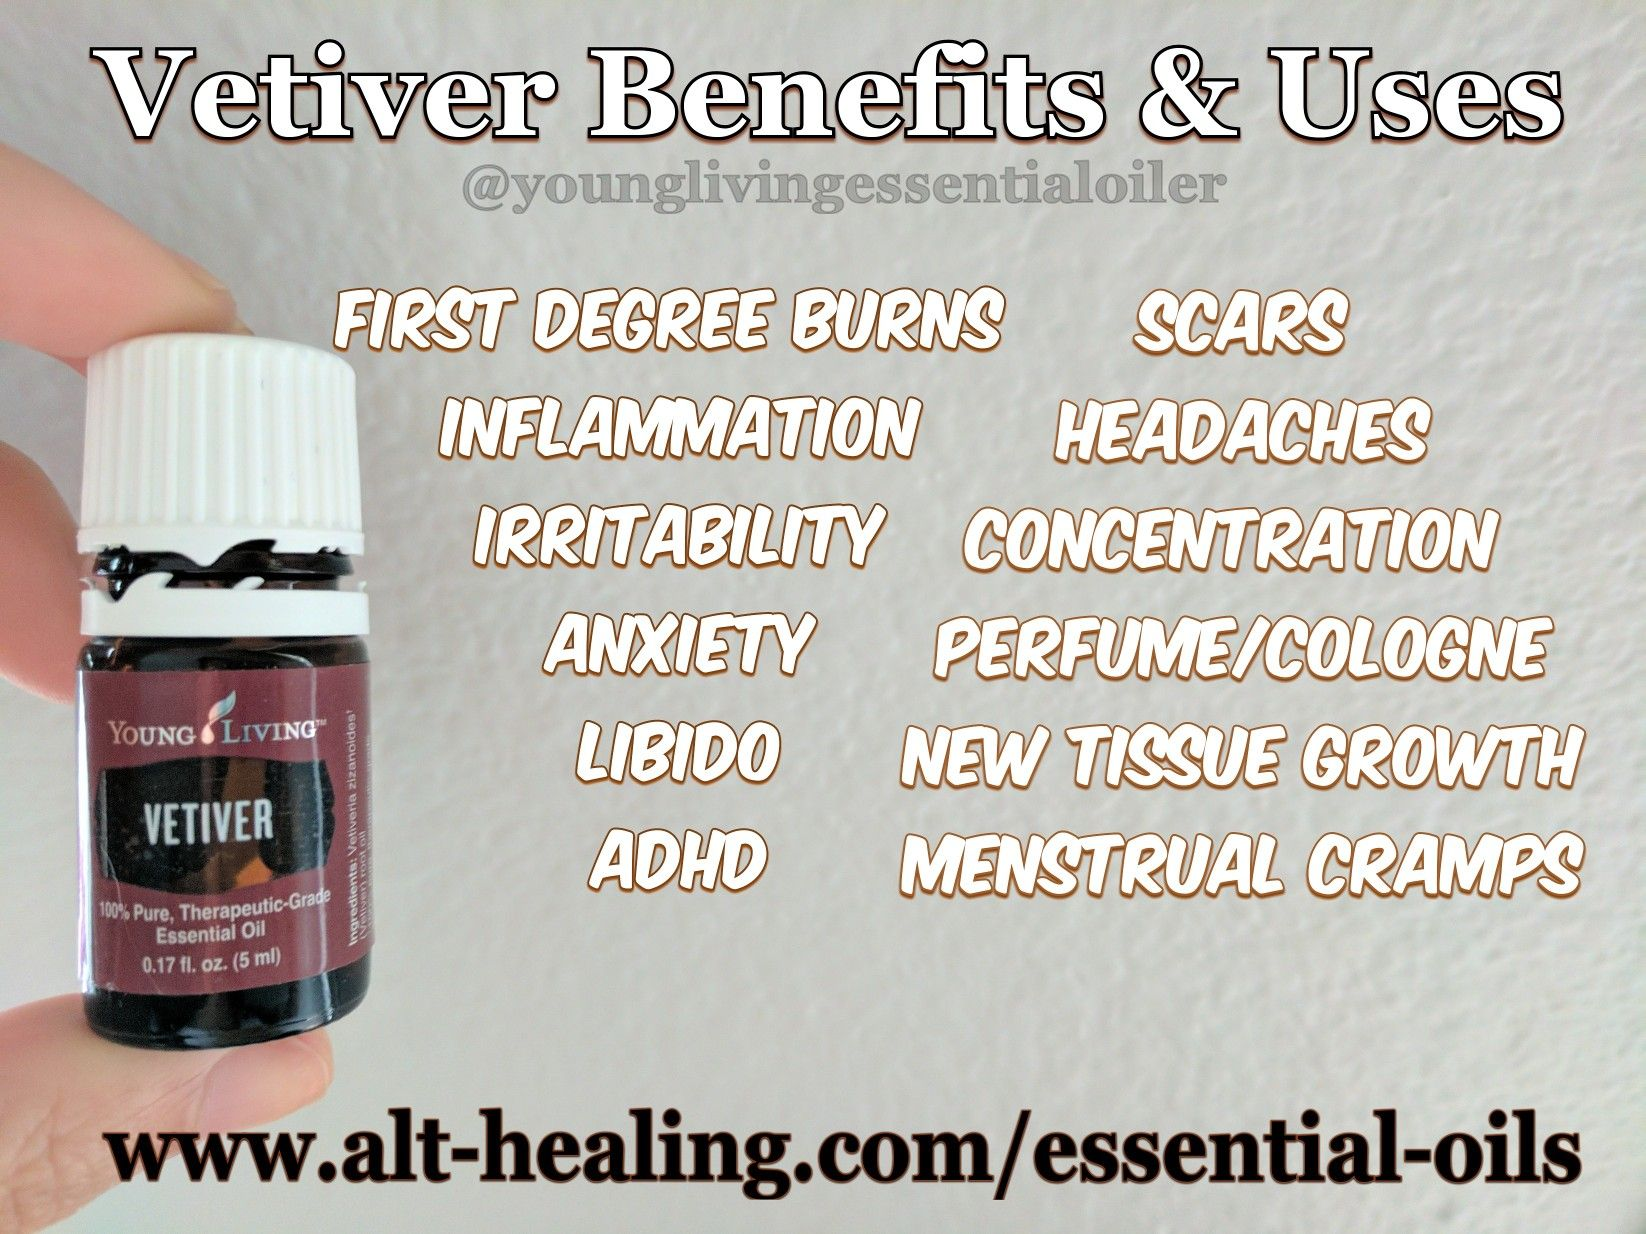 Quick Vetiver Testimony: My husband recently badly burned his hand on a hot stainless steel pot and applied Vetiver Essential Oil to it (neat) after running his hand under cold water for a minute or so and then drying it off. The pain went away within a couple of minutes and no blister formed! . . More about Vetiver can be found on my blog at www.alt-healing.com (link in bio) . . You may also sign up for my newsletter at the above website to receive updates when a new blog post is up.❤️